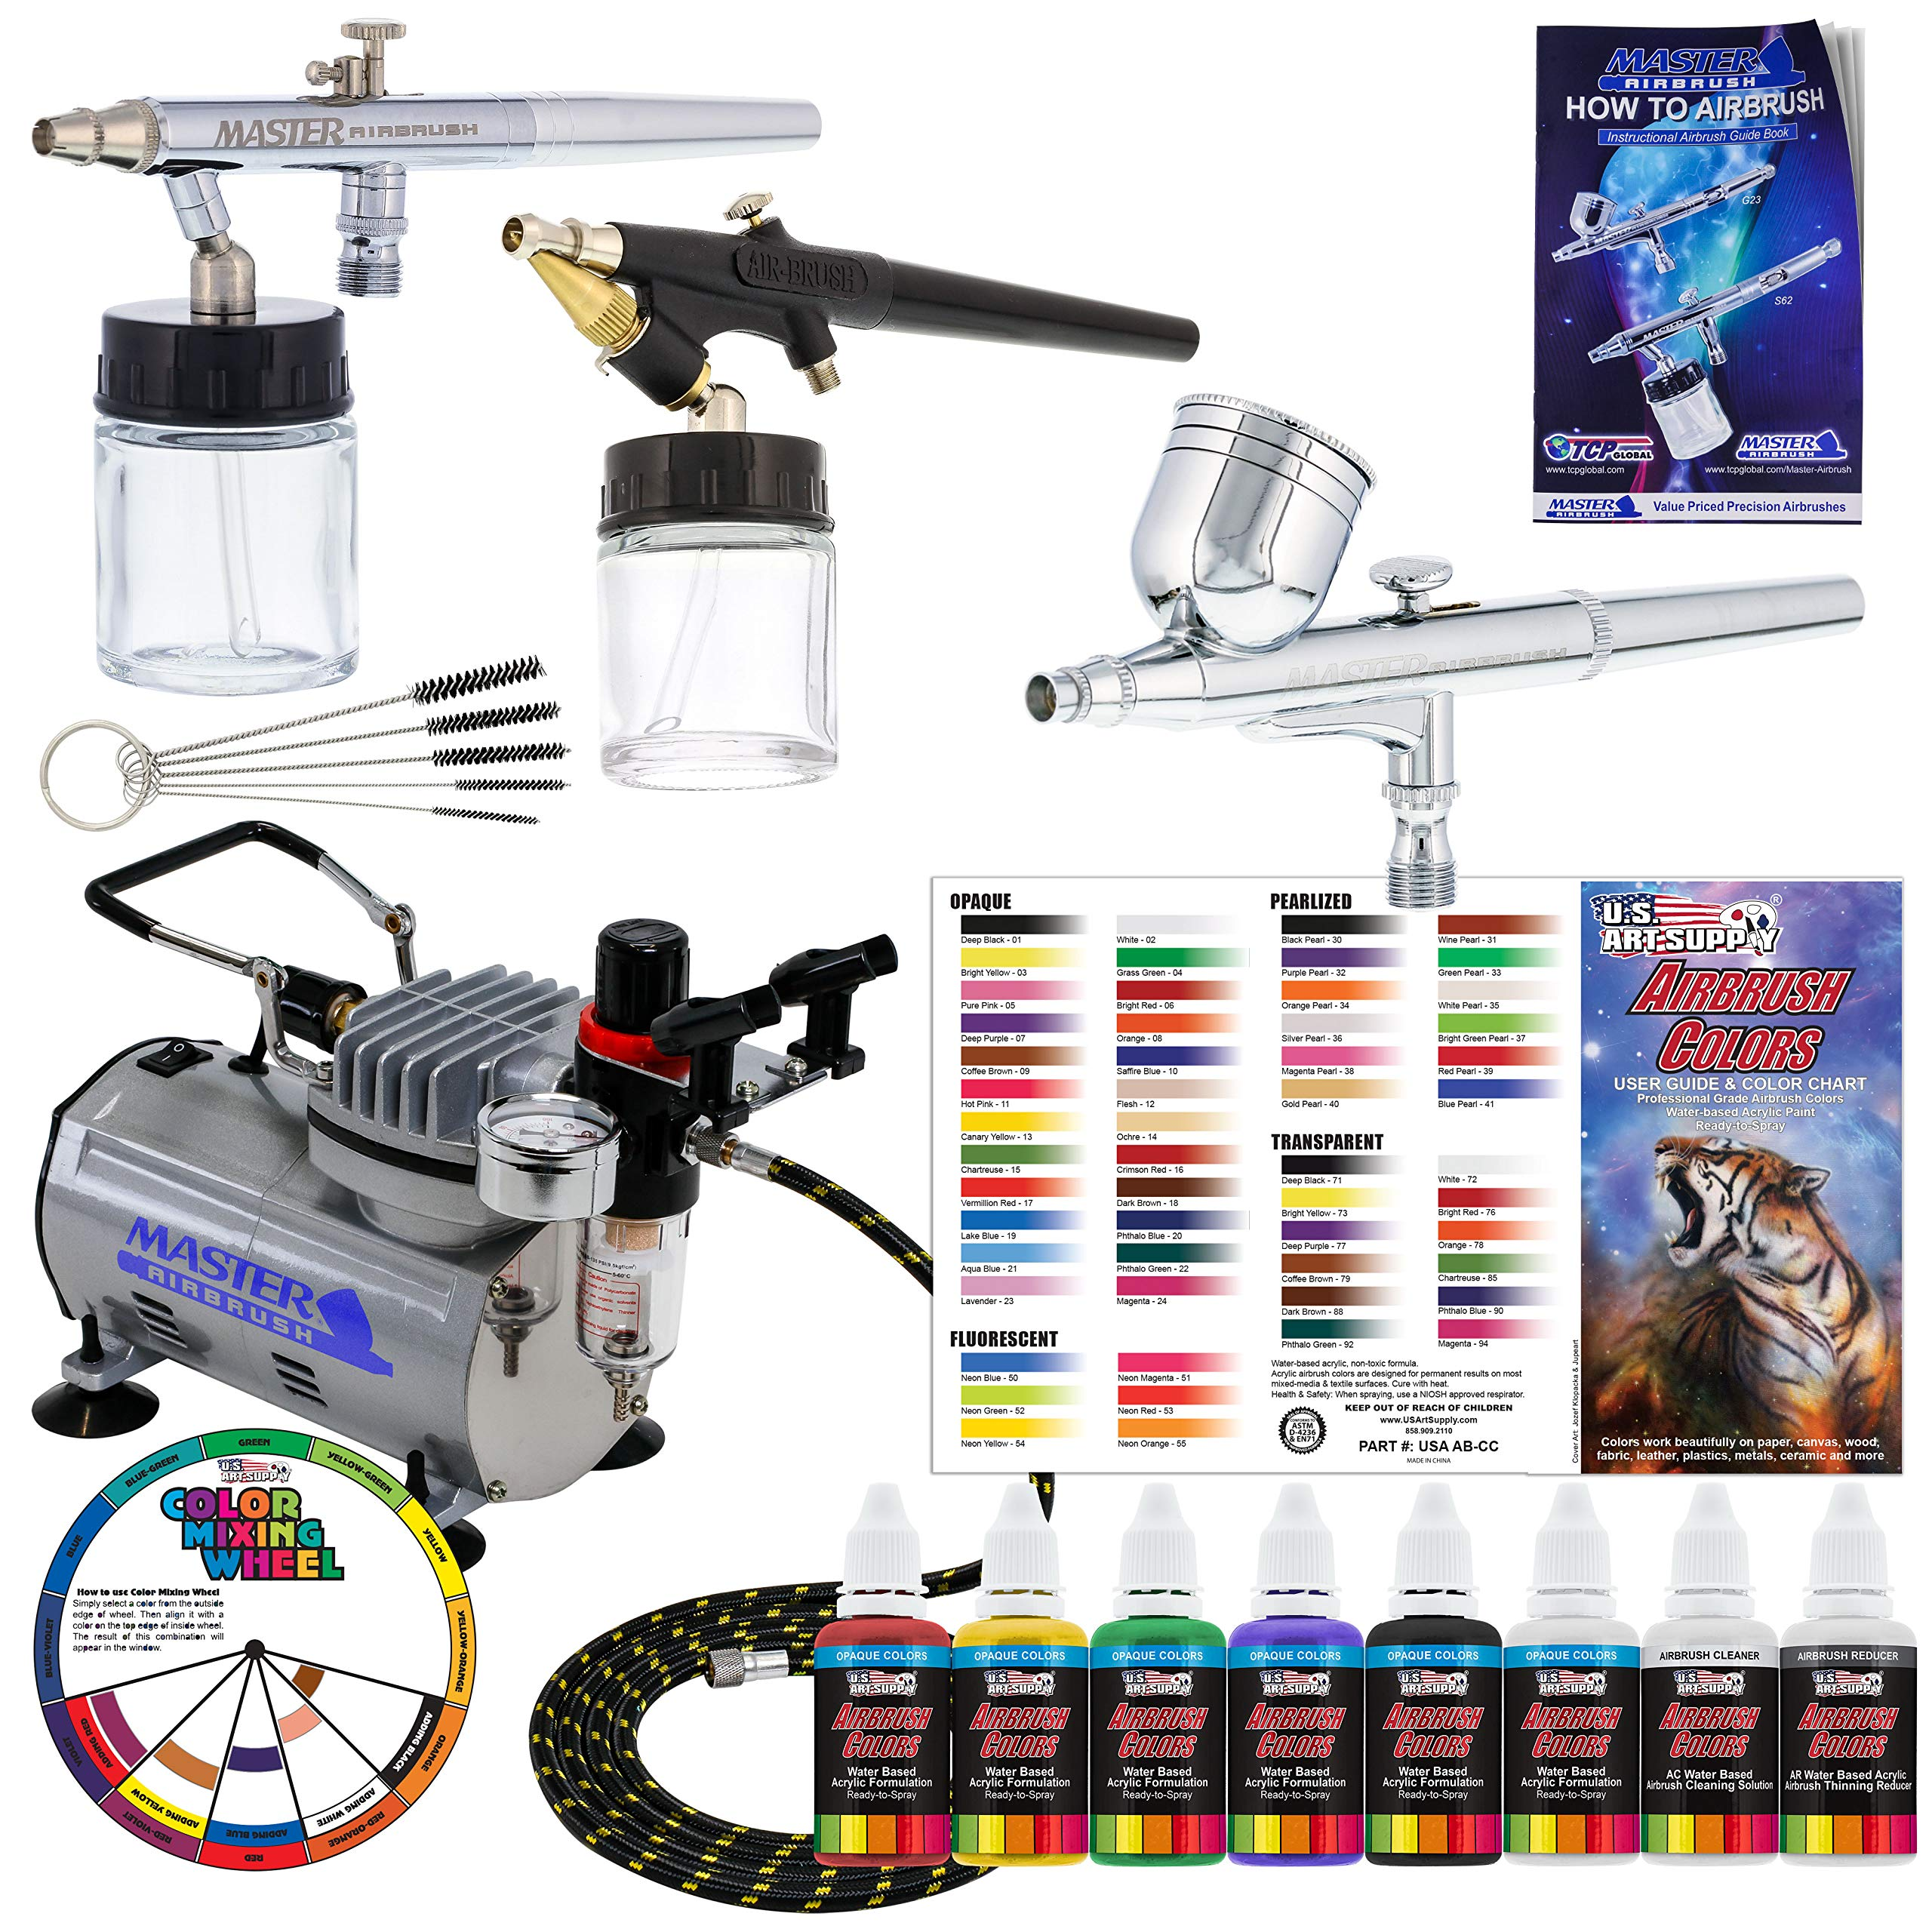 3 Airbrush Professional Master Airbrush Airbrushing System Kit with 6 U.S. Art Supply Primary Colors Acrylic Paint Artist Set - G22, S68, E91 Gravity & Siphon Feed Airbrushes and Air Compressor